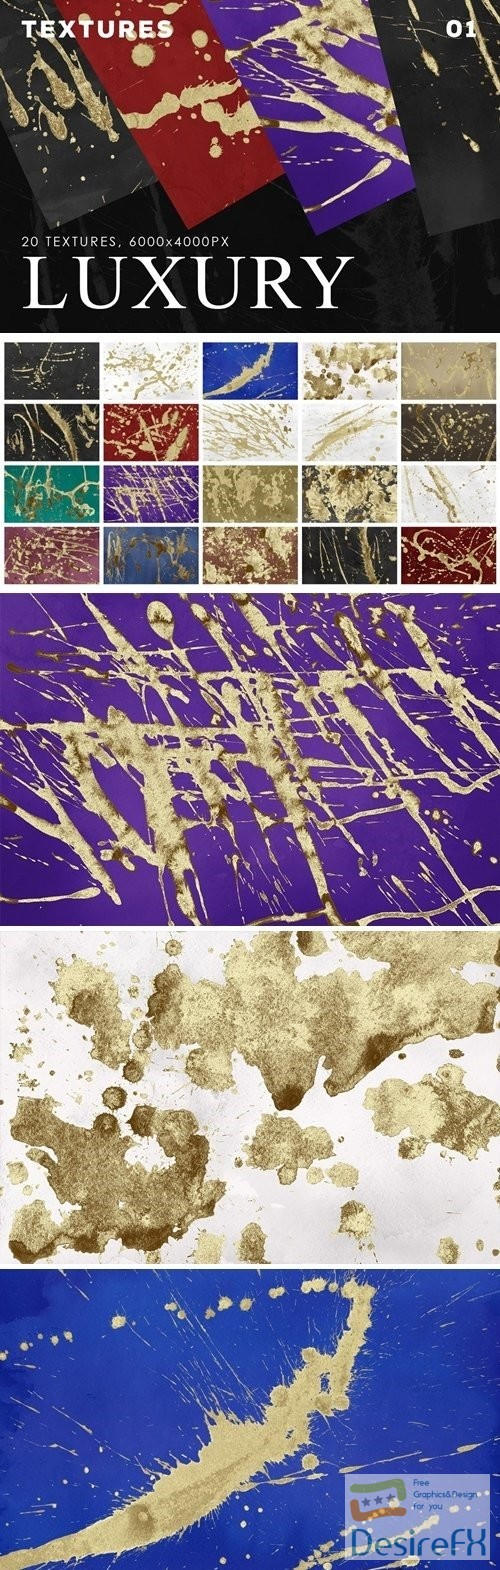 stock-images - Luxury Paint Textures 01